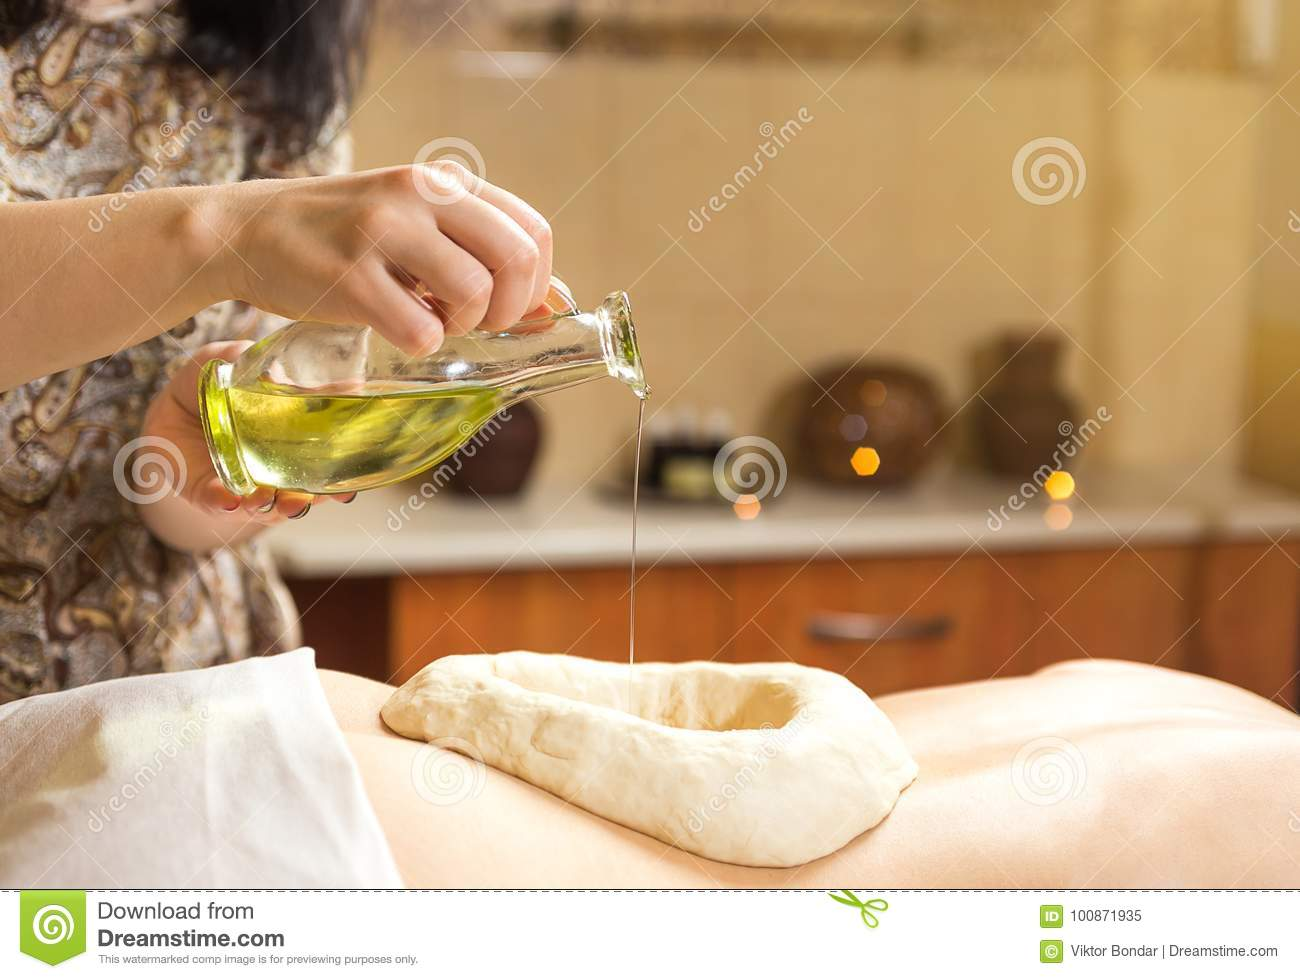 woman in wellness spa having aroma therapy massage with essential oil,Woman enjoying a Ayurveda oil massage treatment in